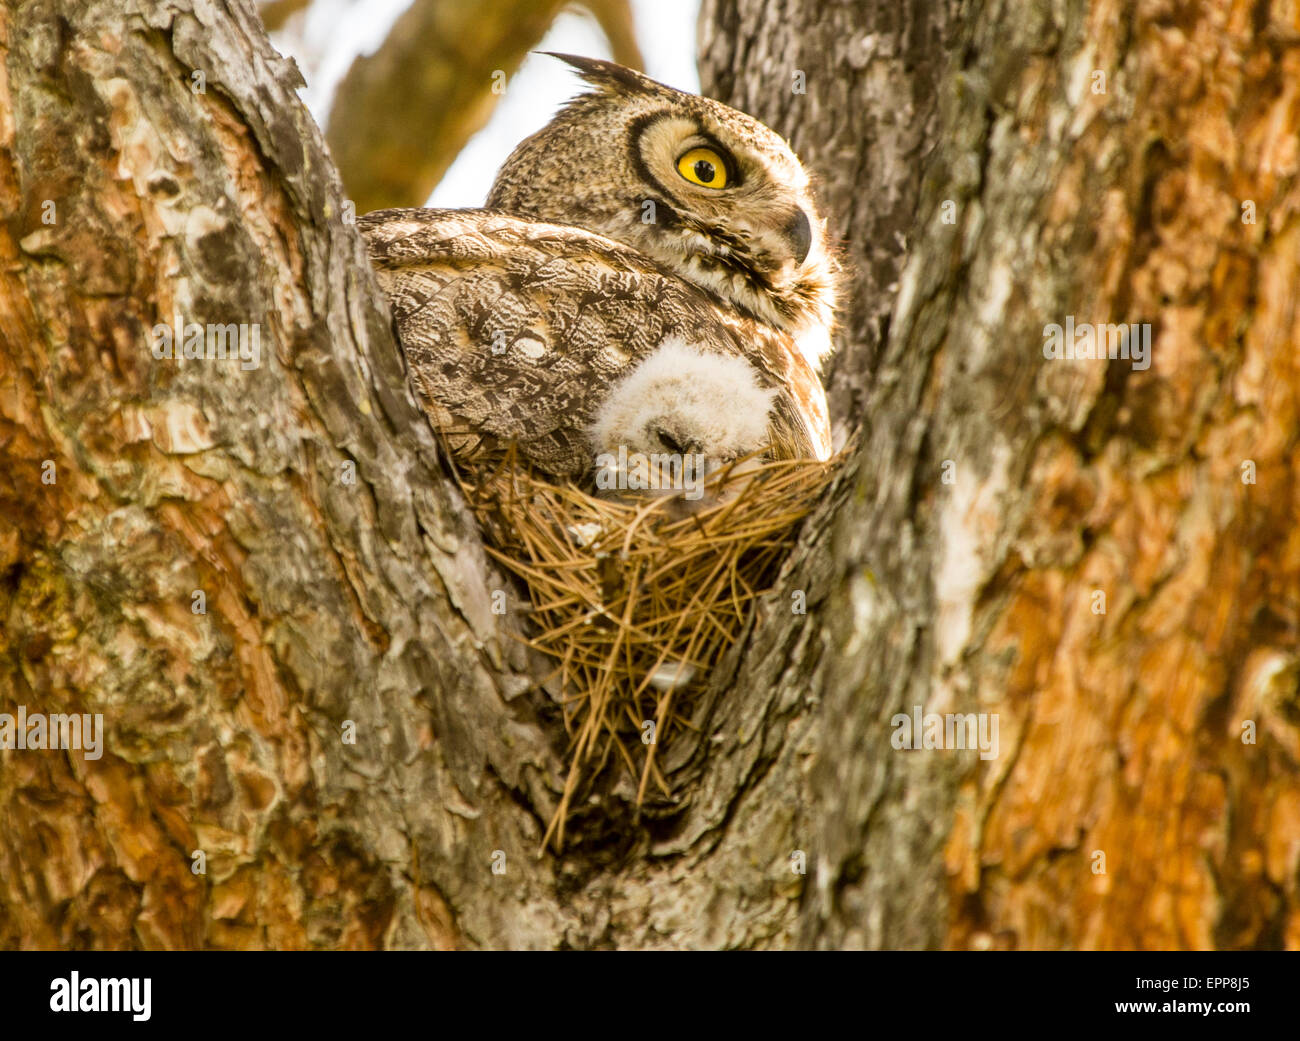 Owls, Great Horned Owl and new born Owlet in nest of a pine tree. Idaho - Stock Image